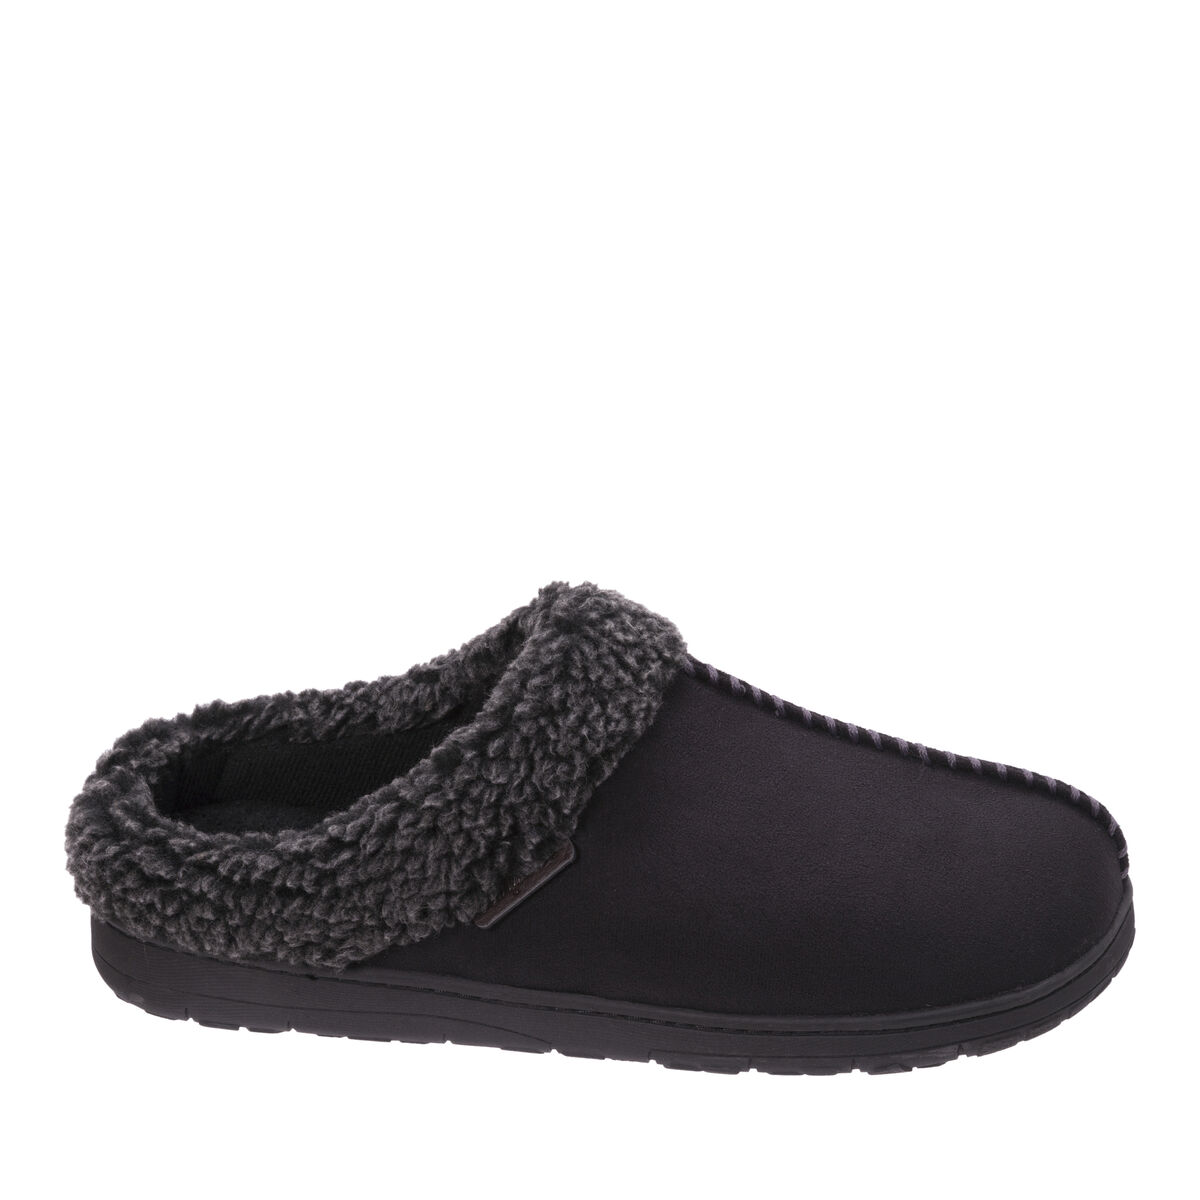 Men's Wide Width Microsuede Clog with Whipstitch